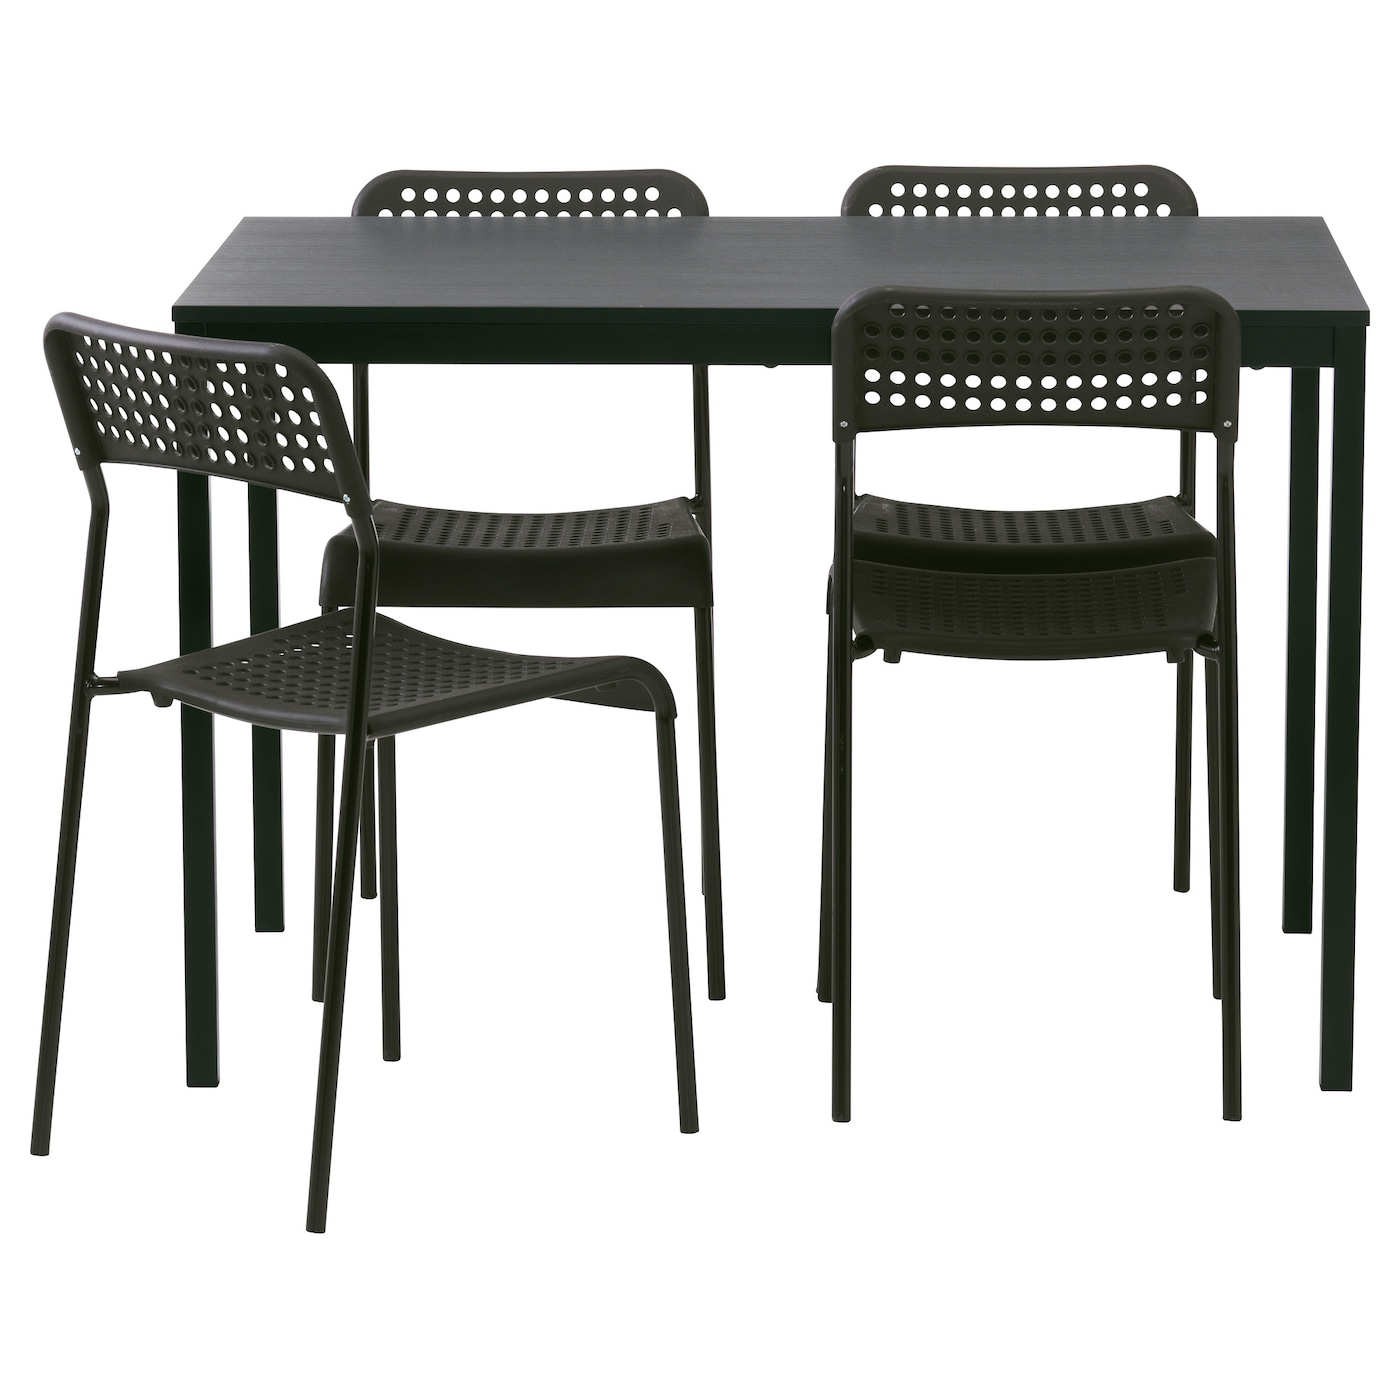 T rend adde table and 4 chairs black 110 cm ikea for Table 4 personnes ikea